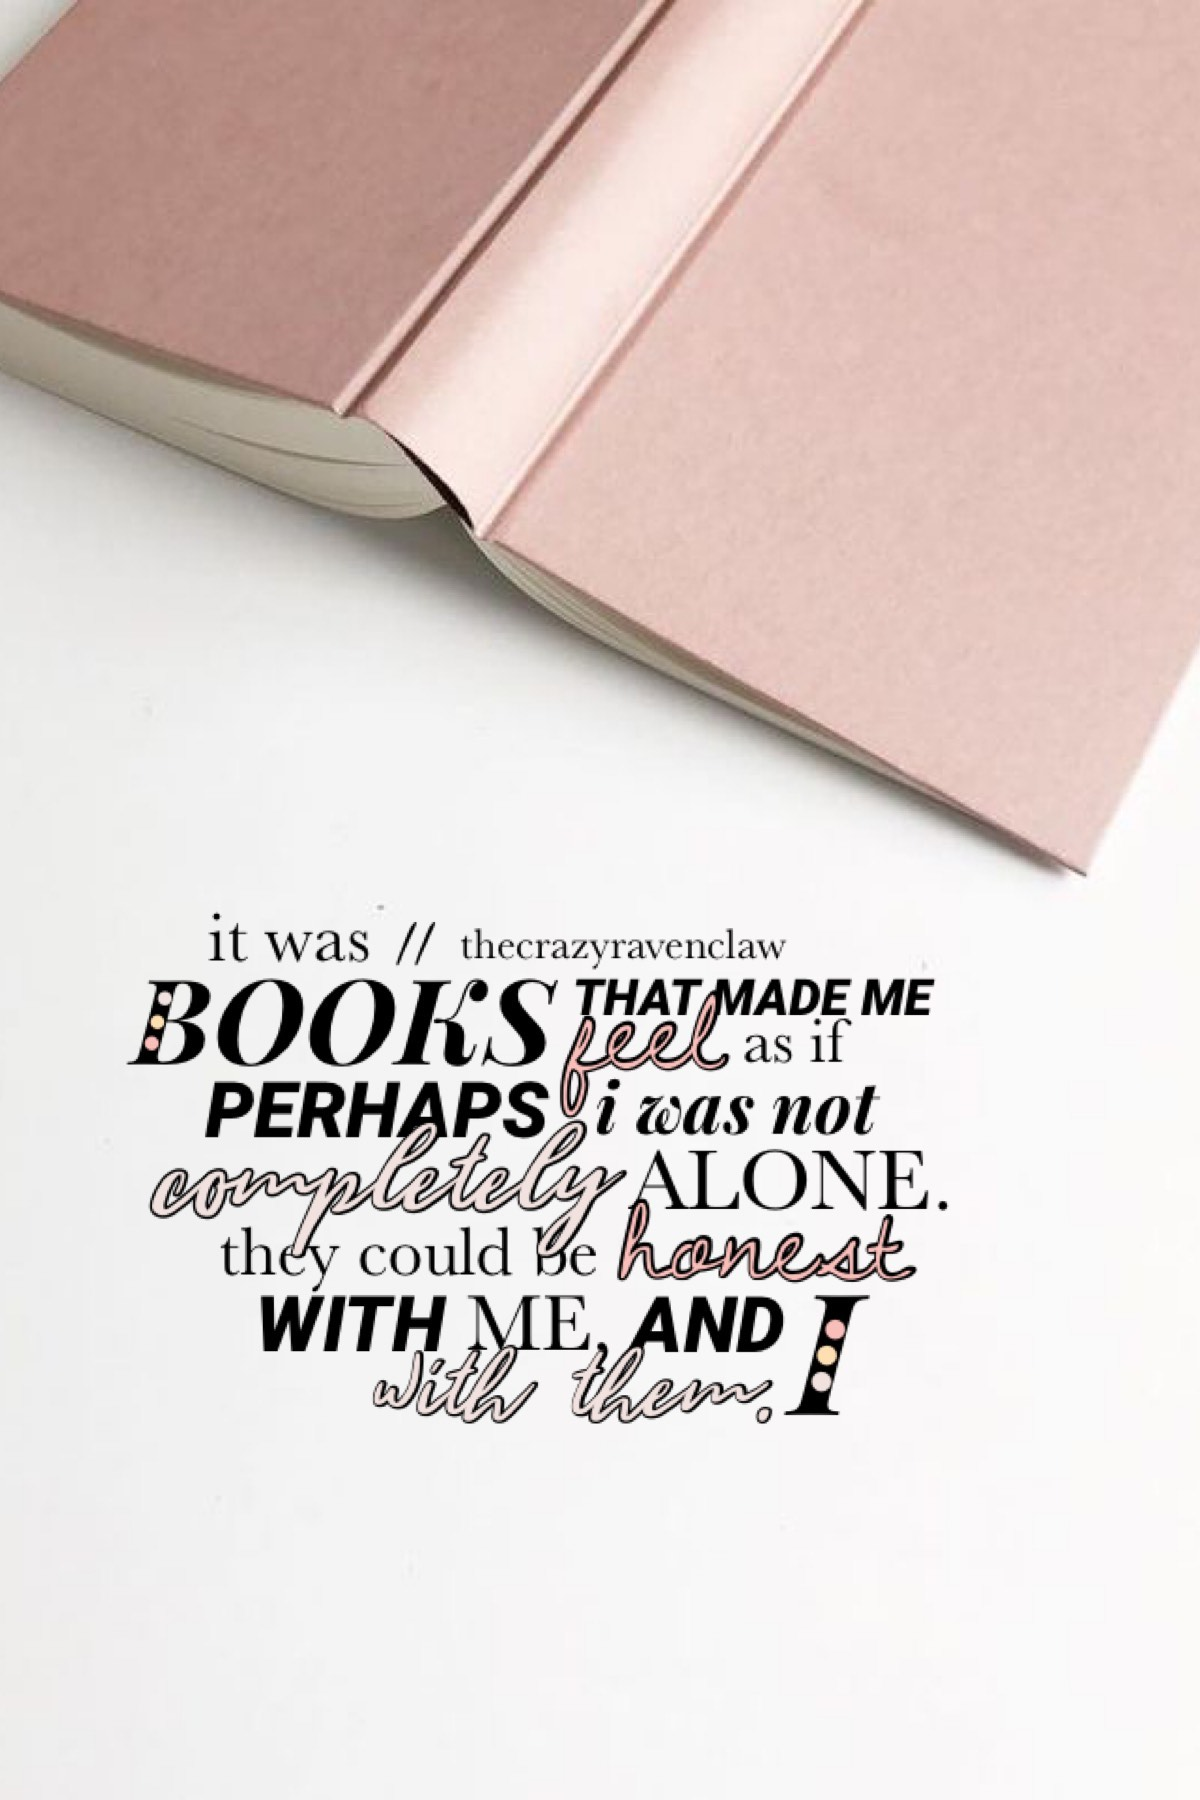 quote by will herondale aka one of my favorite literary characters of all time i love him sO mUcH,, anyway i'm rlly getting back into shadowhunters again so that's that :P  i made a bunch of collages on the plane so i'll have some good posting material fo